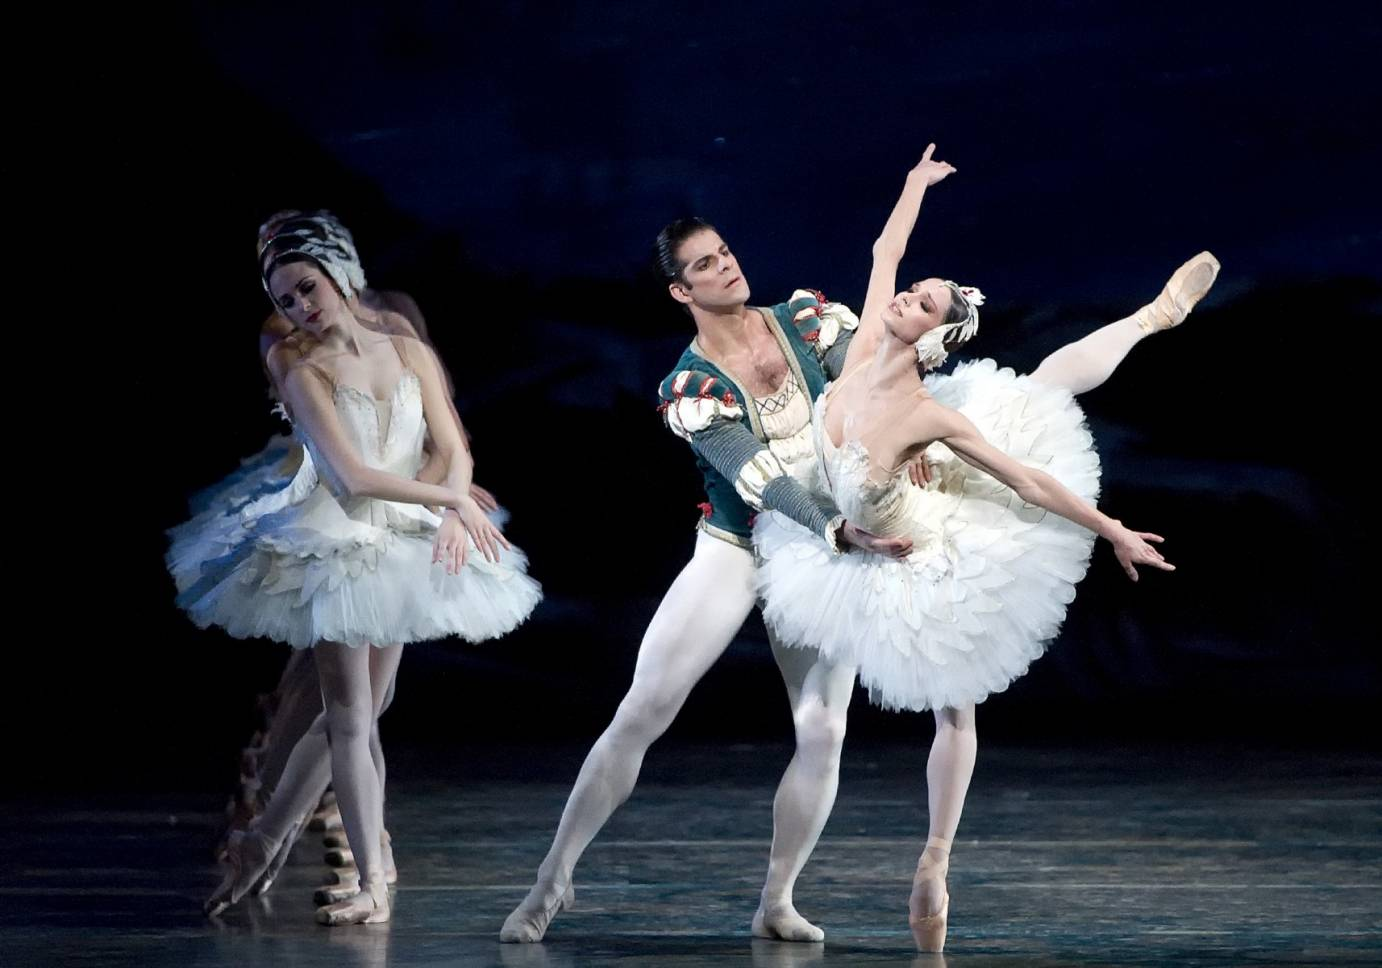 Polina Semionova and Marcelo Gomes in Swan Lake. Photo: Gene Schiavone.